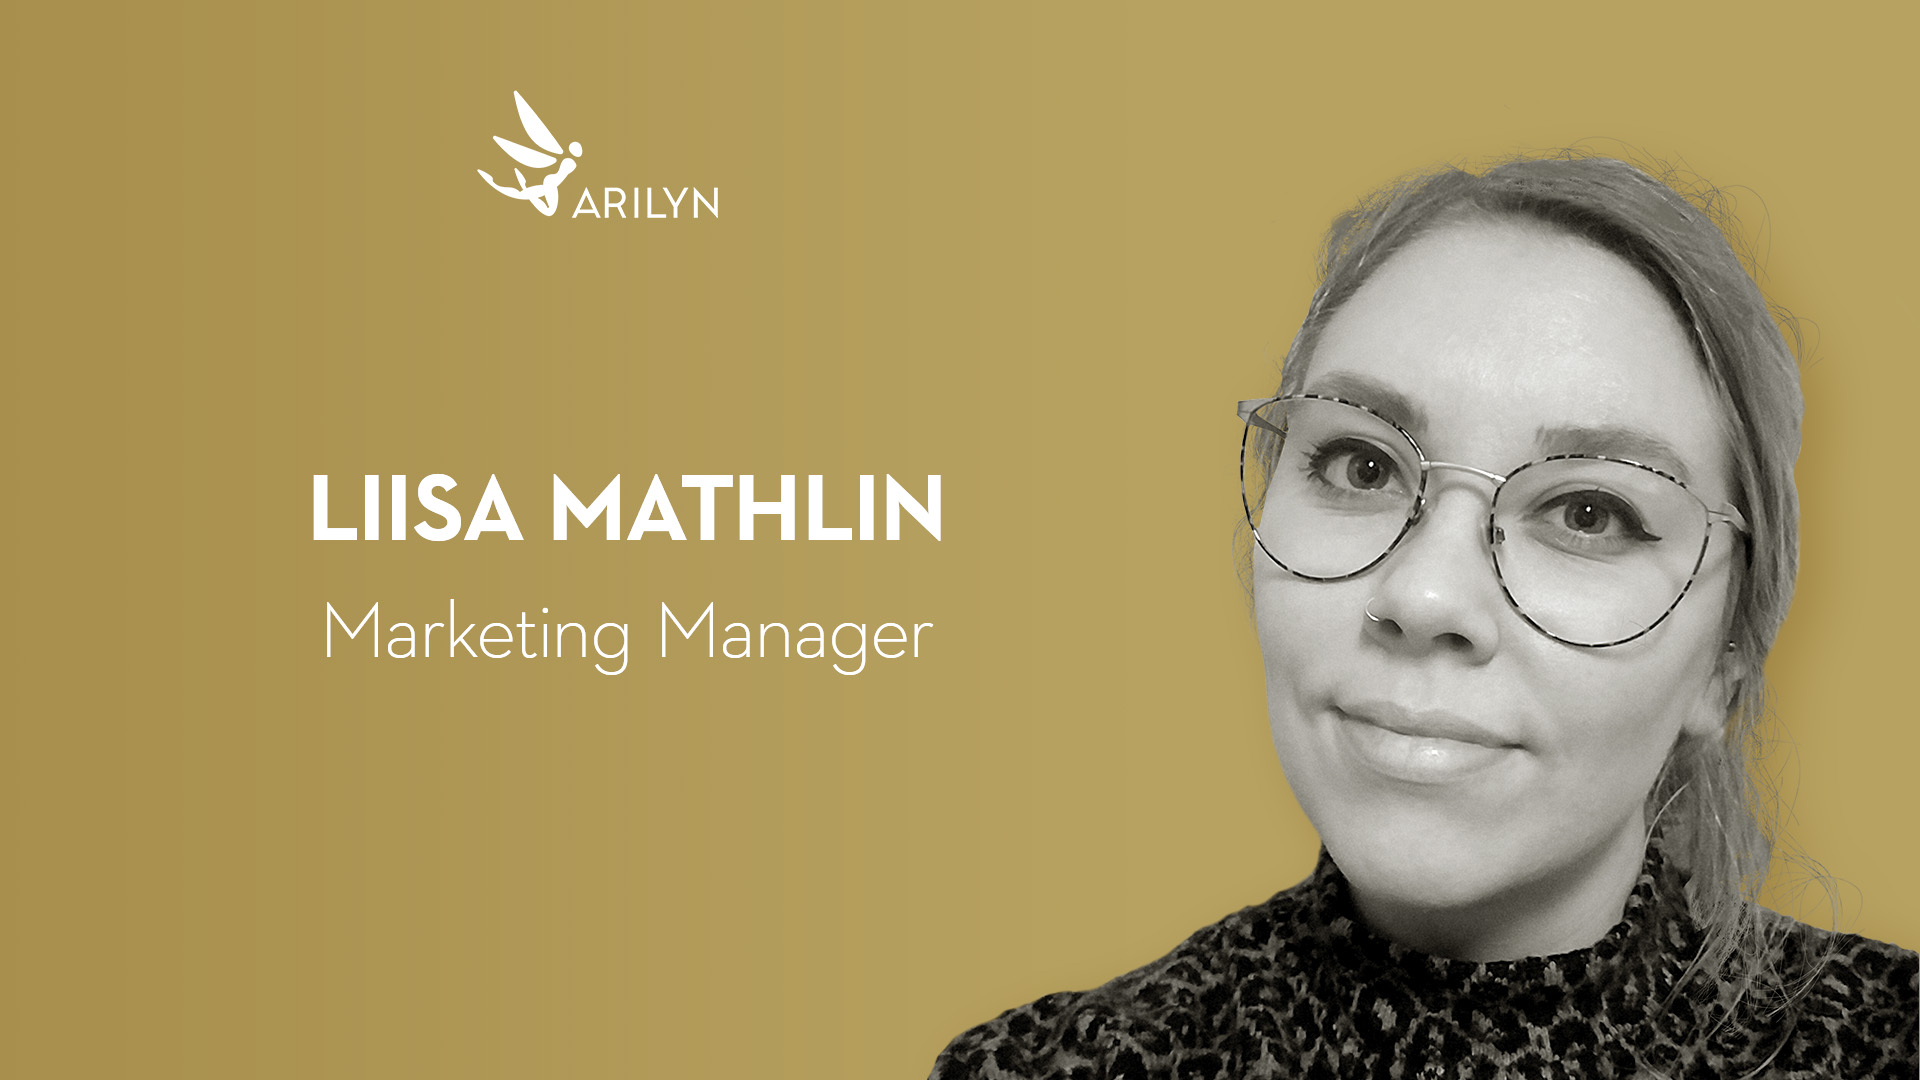 Get to know Arilyn – Liisa Mathlin, Marketing Manager